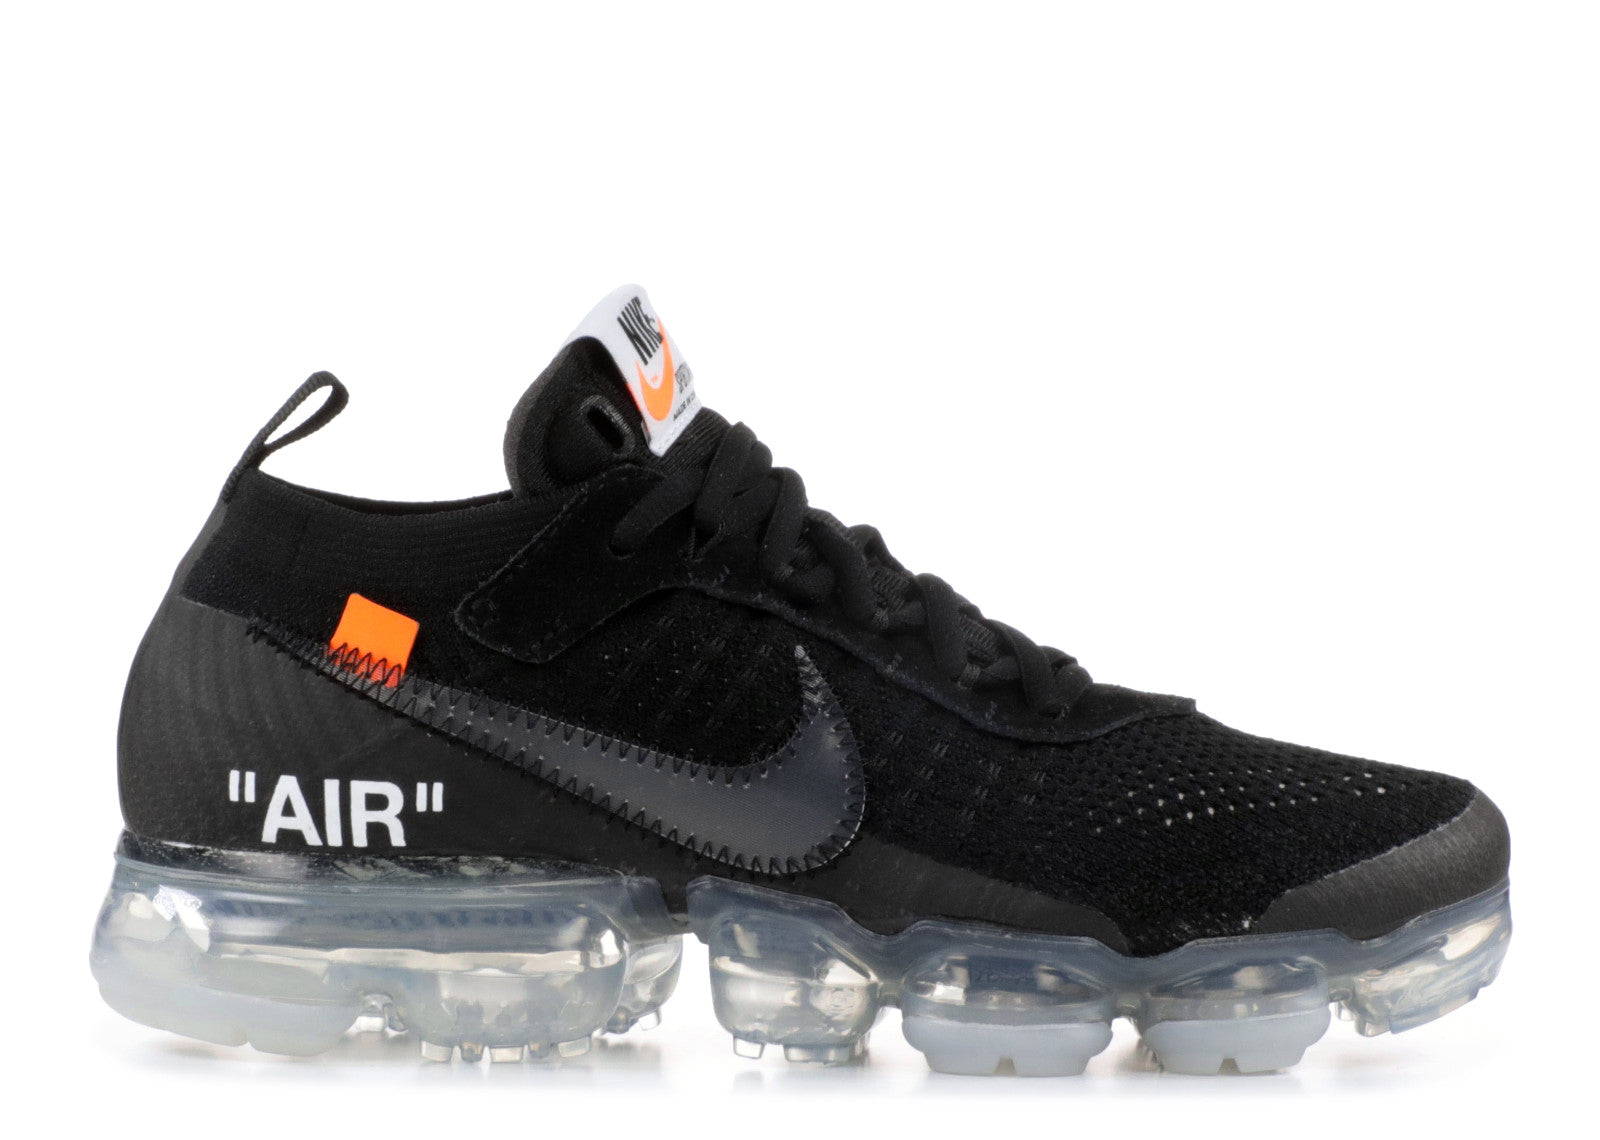 vapormax white and black